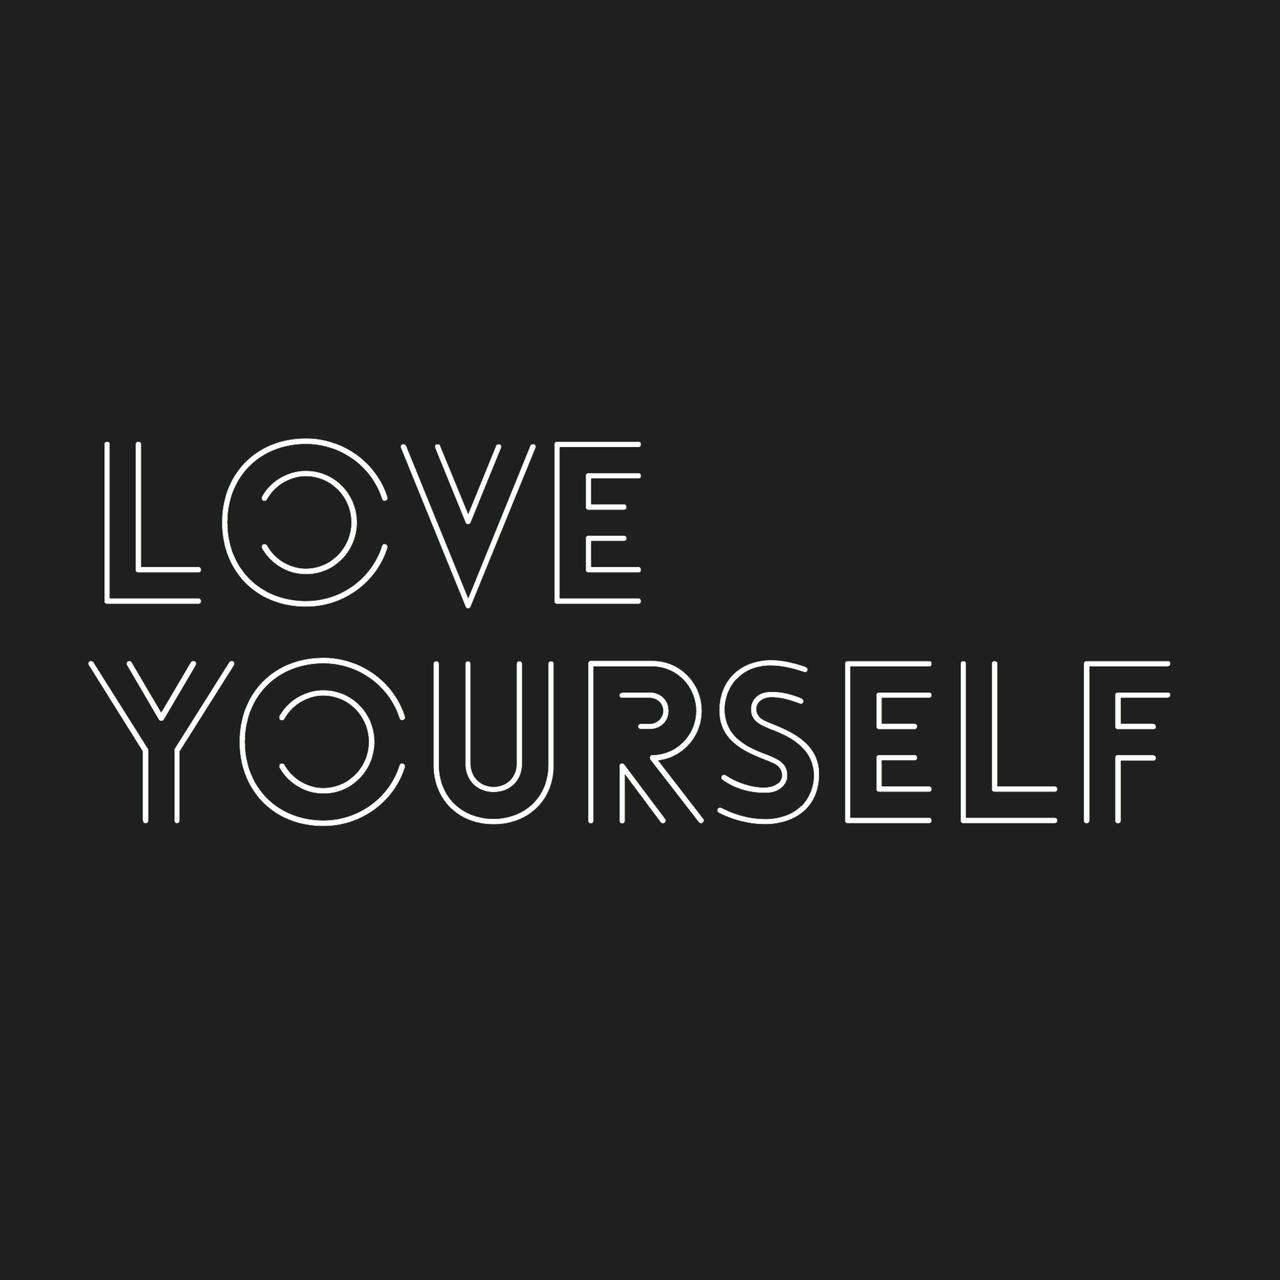 Bts Love Yourself Quotes Wallpaper Master Trick